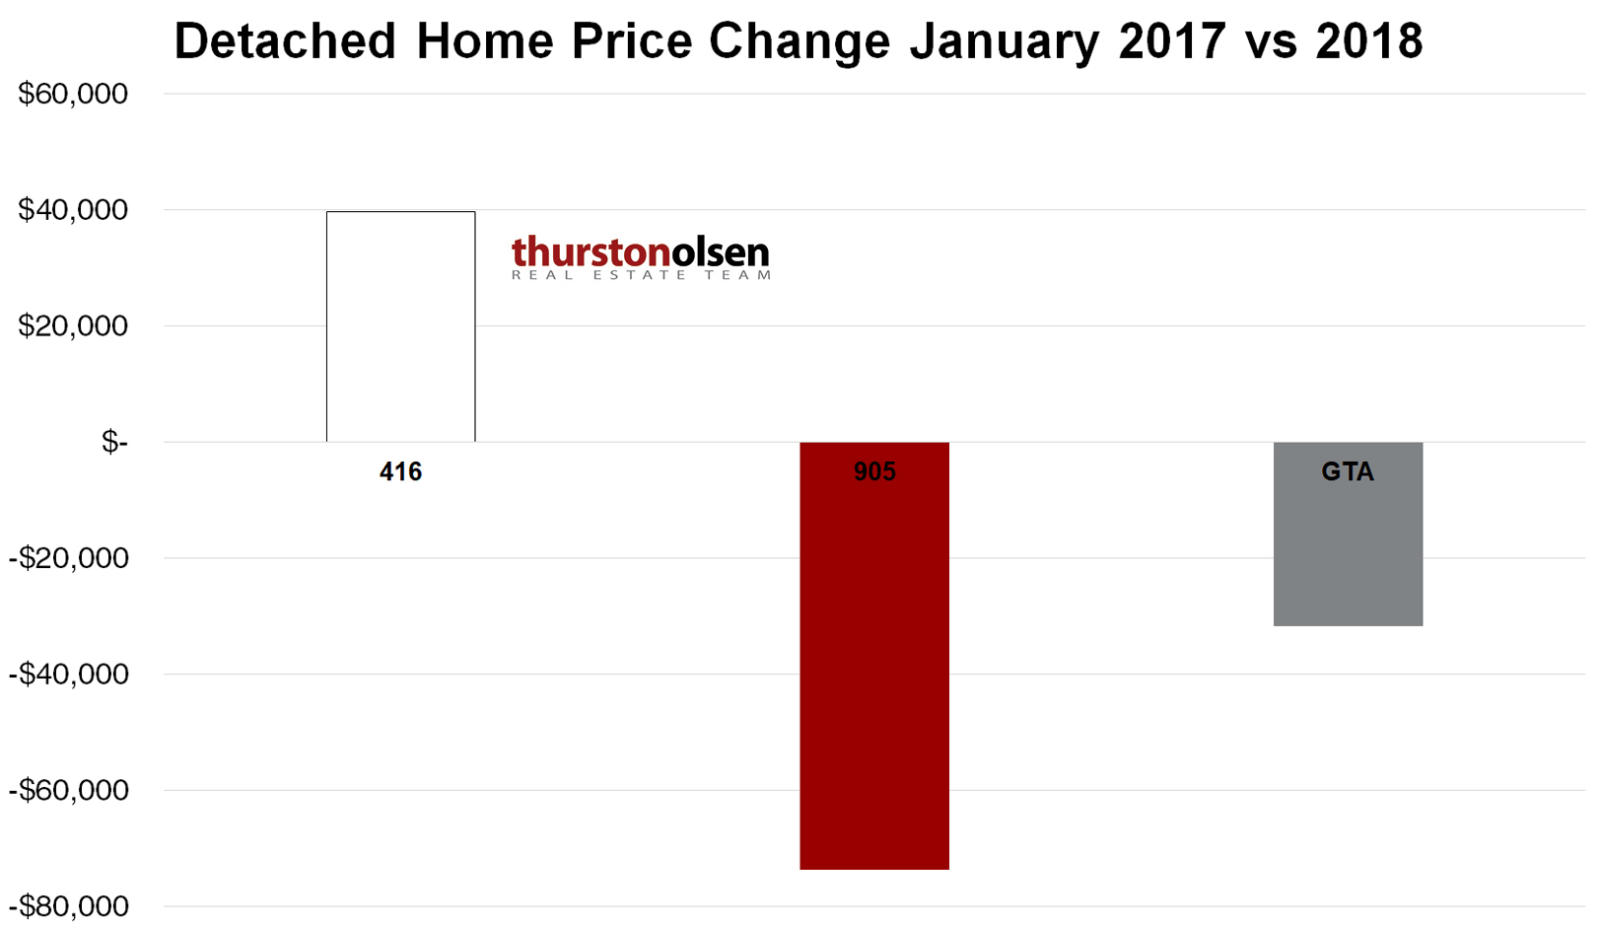 Detached Home Price Change January 2017 vs 2018